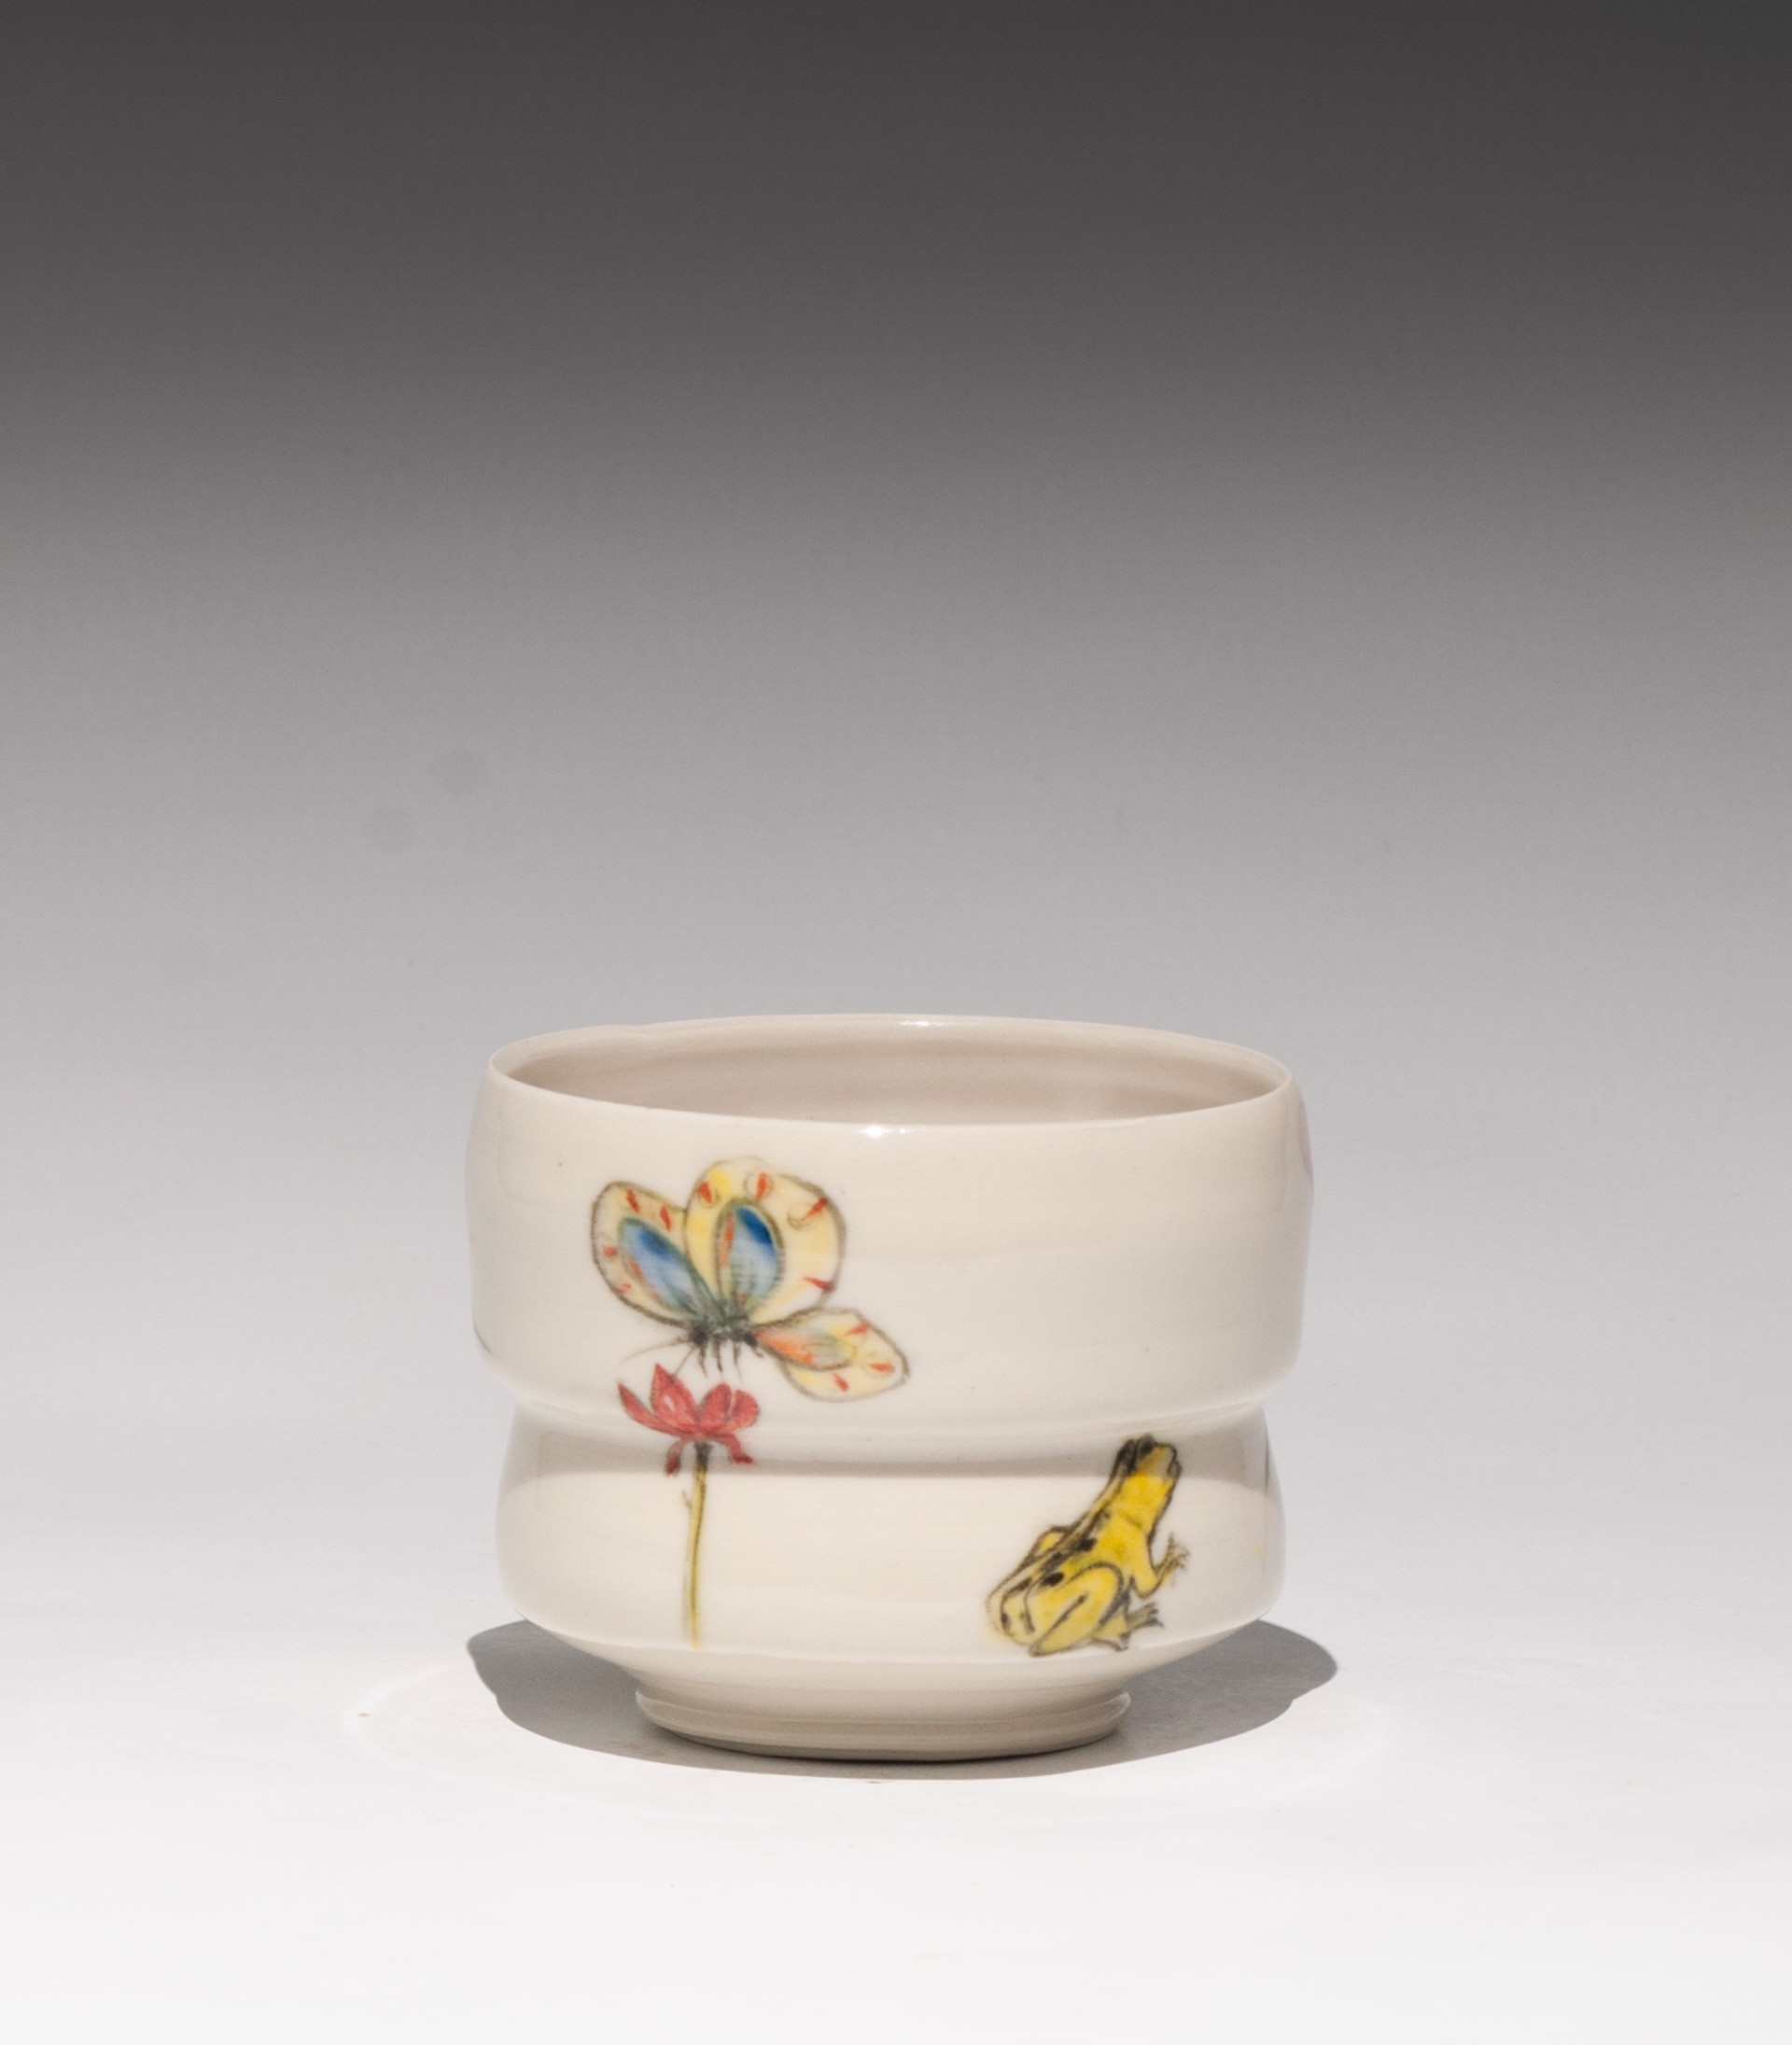 Insect Tea Bowl 6 by Caroline Bottom Anderson